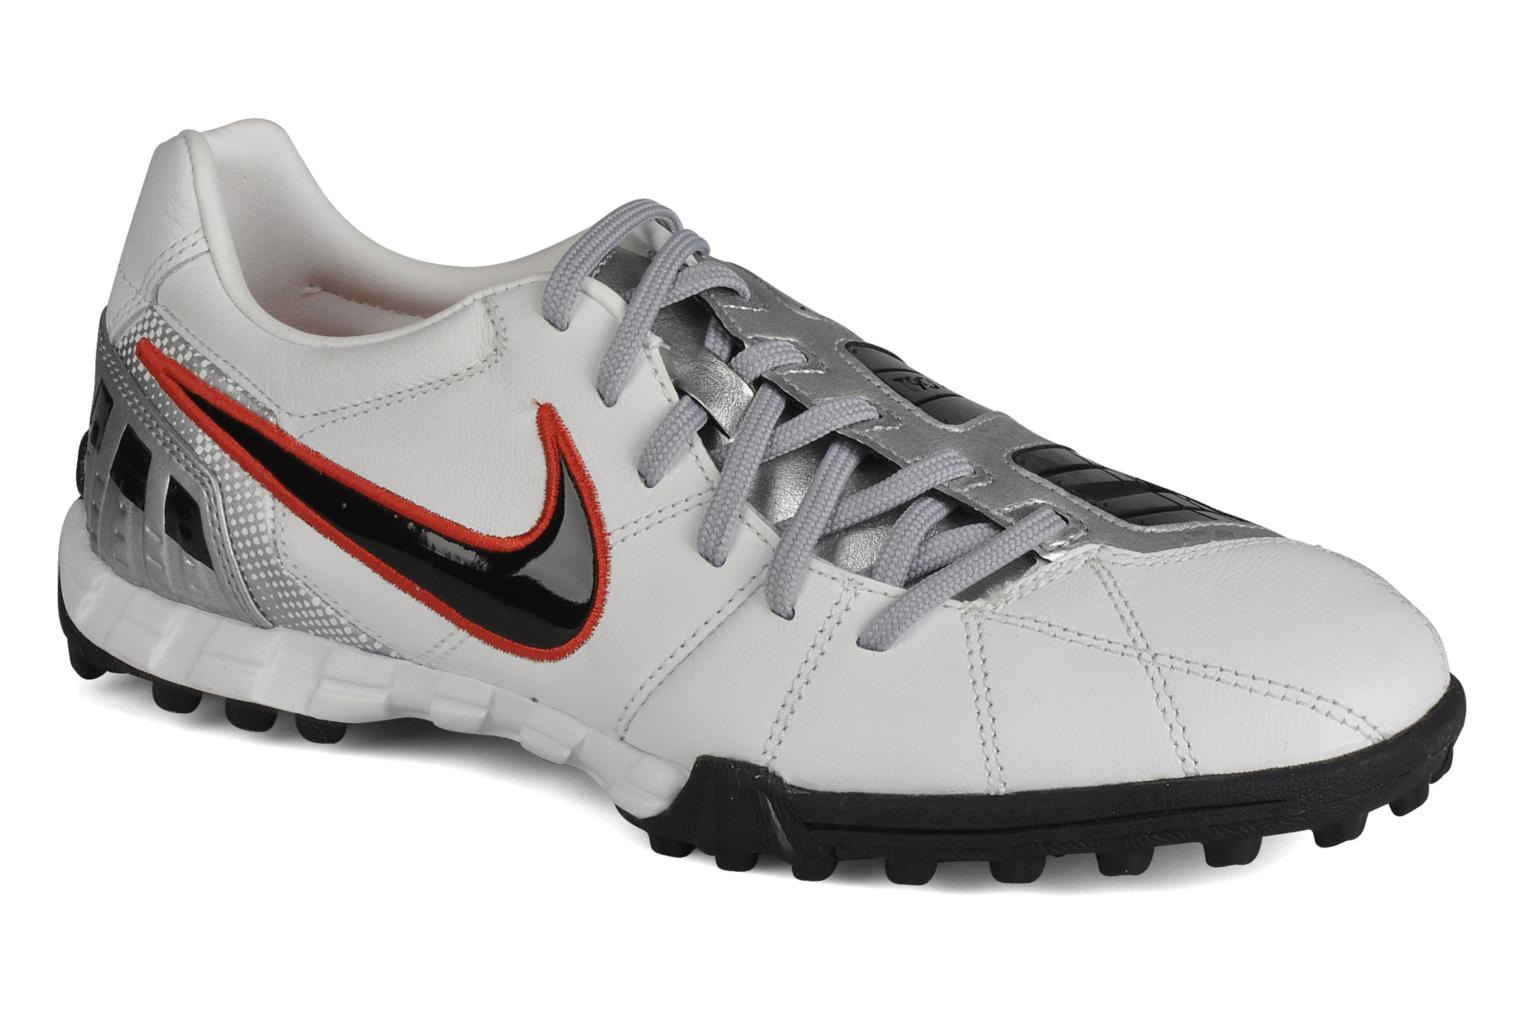 Nike Total90 Chaussures shoot iii l tf (Blanc) Chaussures Total90 de sport chez e0e97b